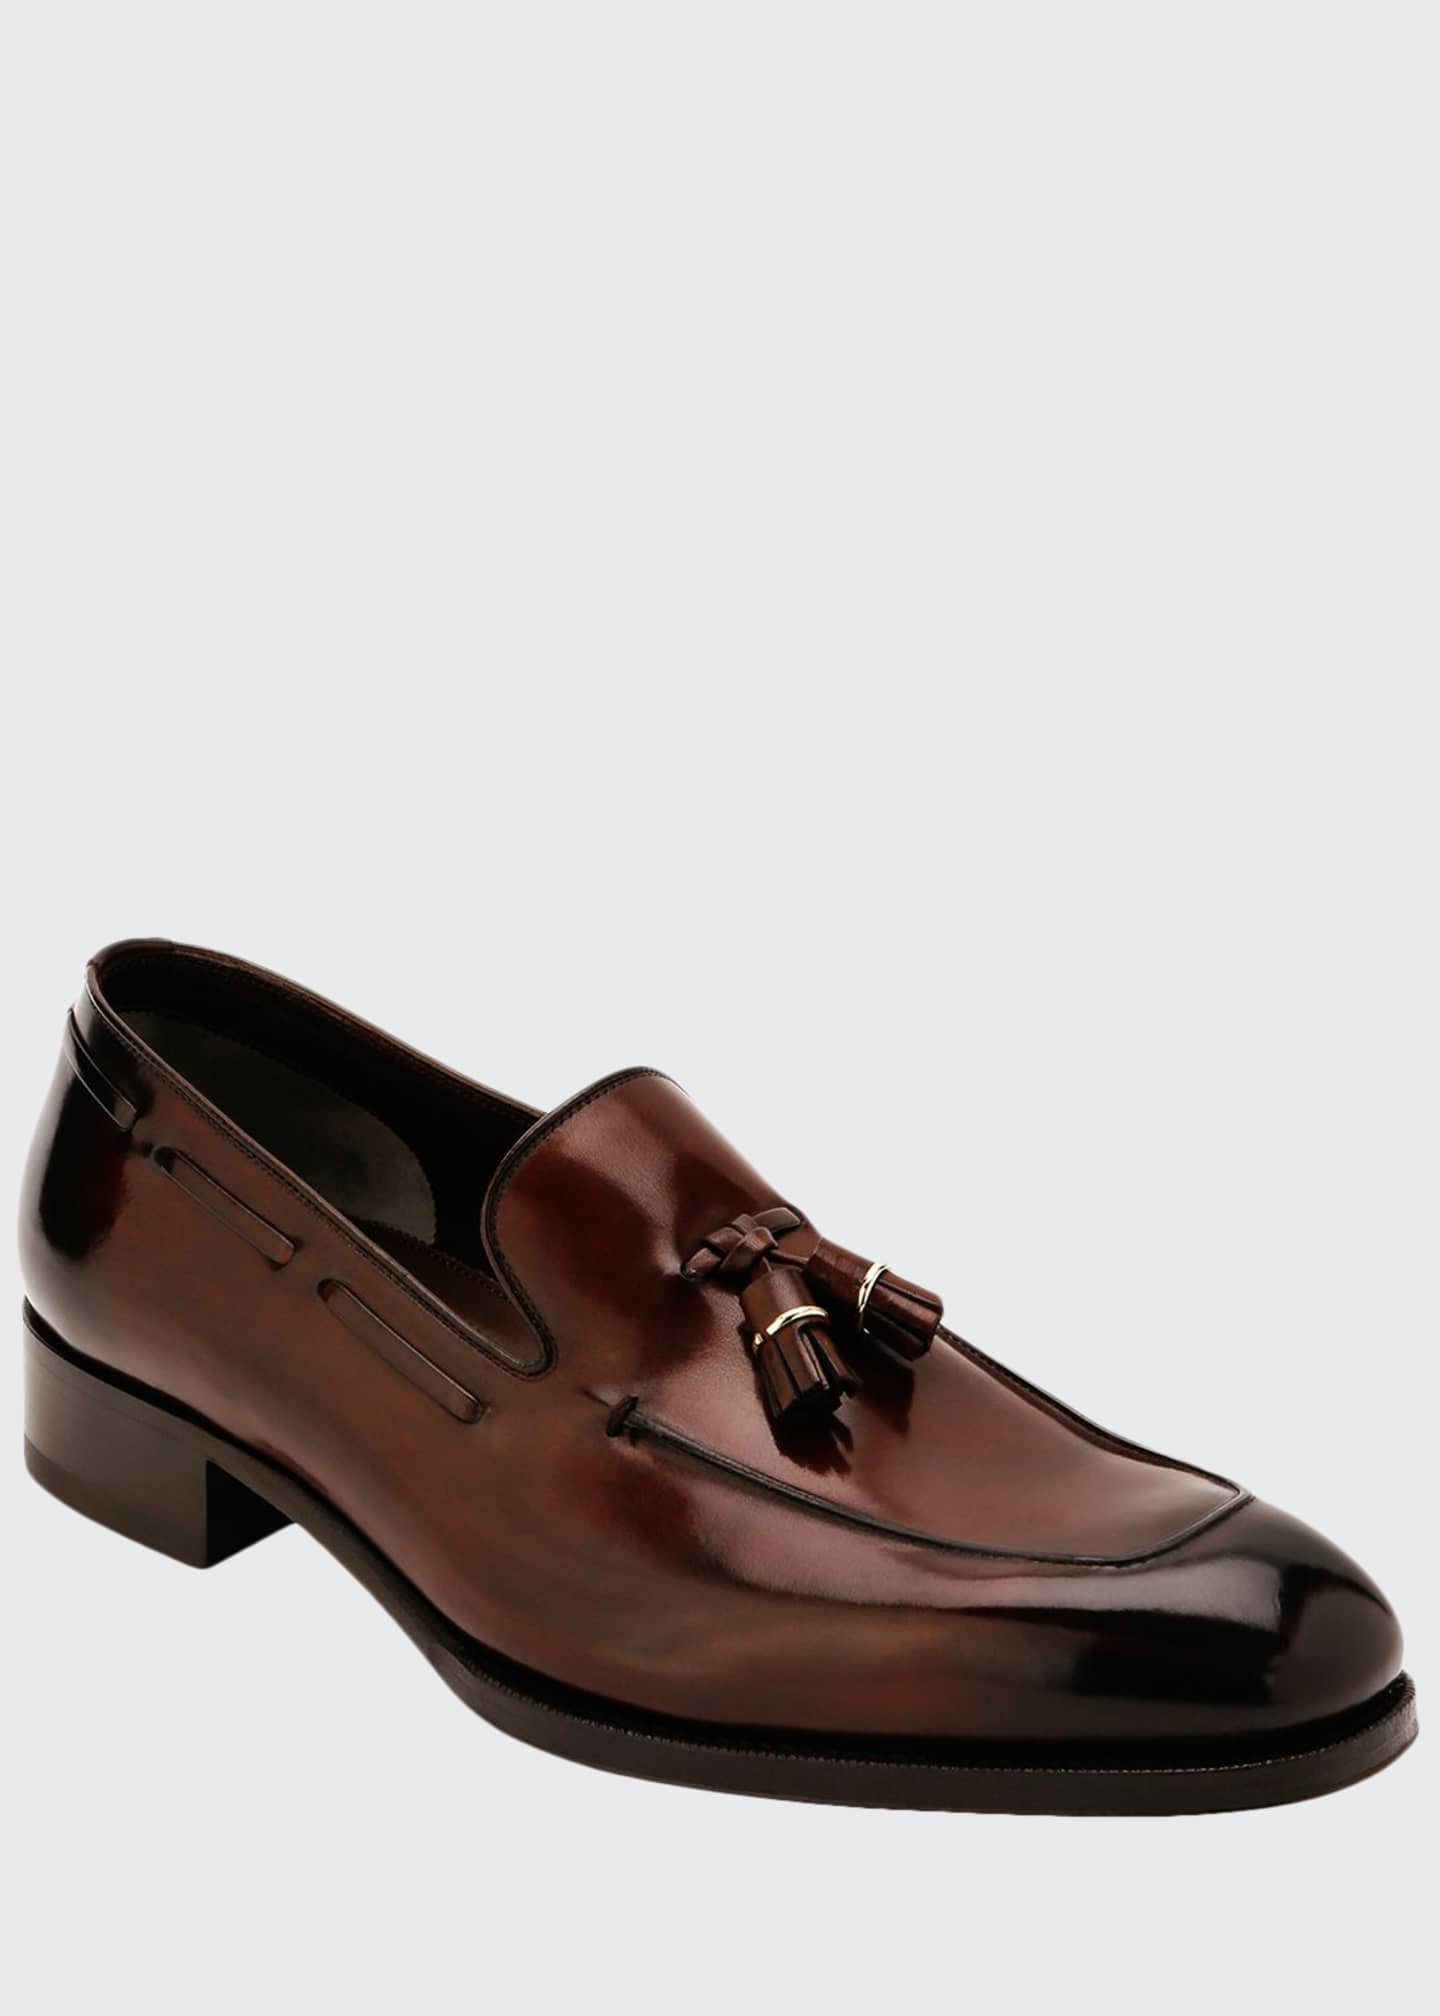 Image 1 of 3: Men's Tassel Loafers